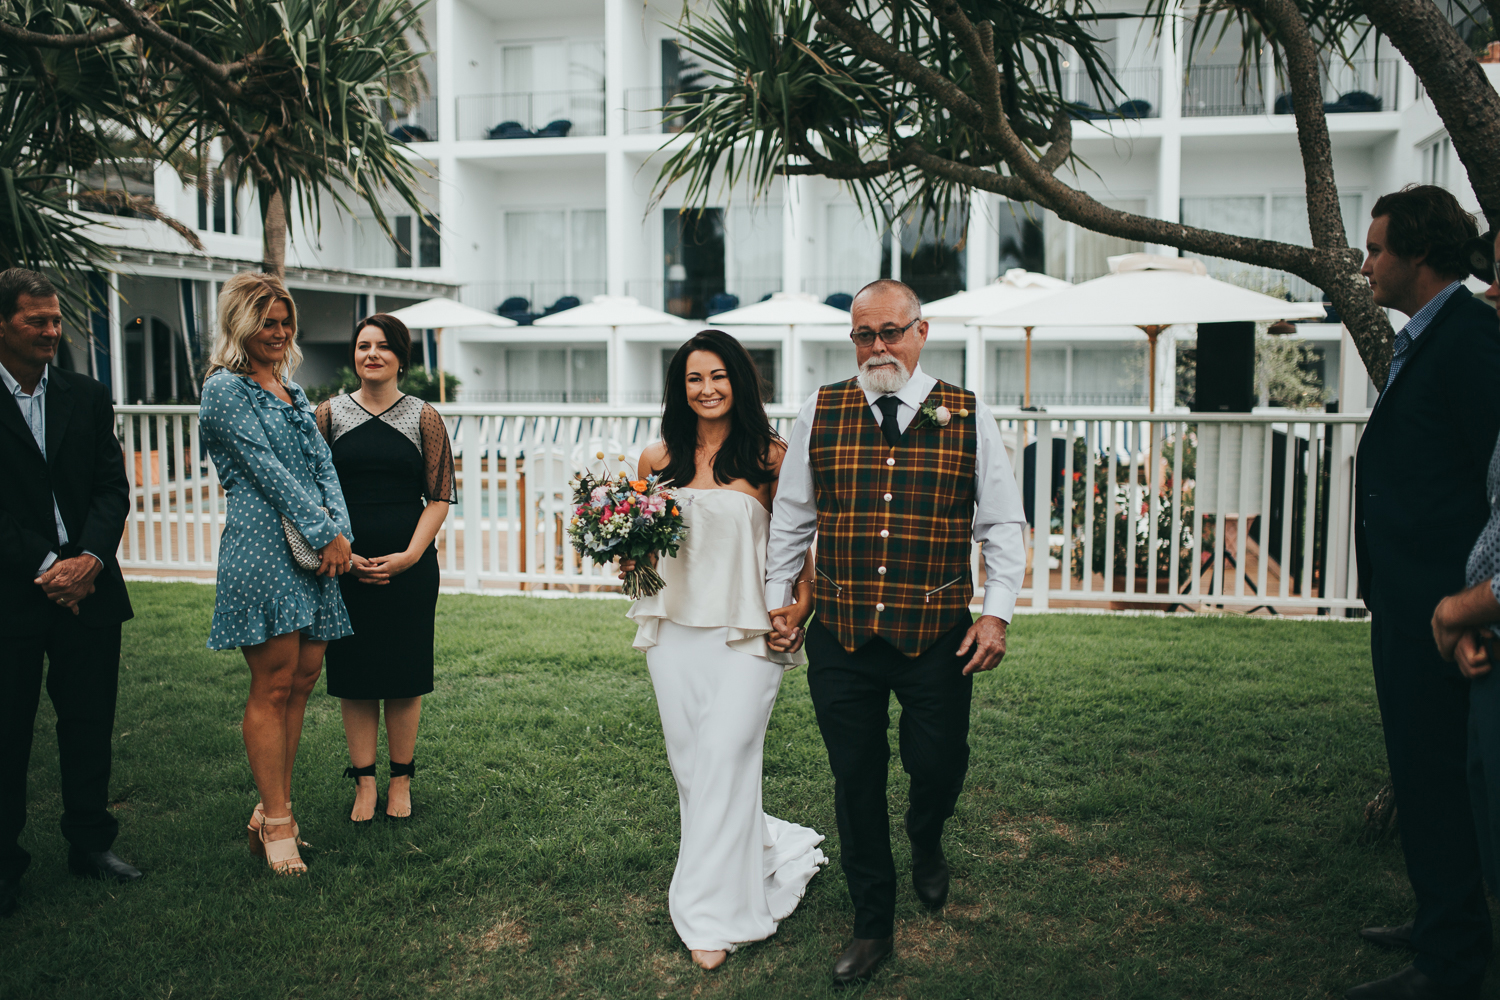 049-halcyon_house_byron_bay_wedding_photographer.jpg